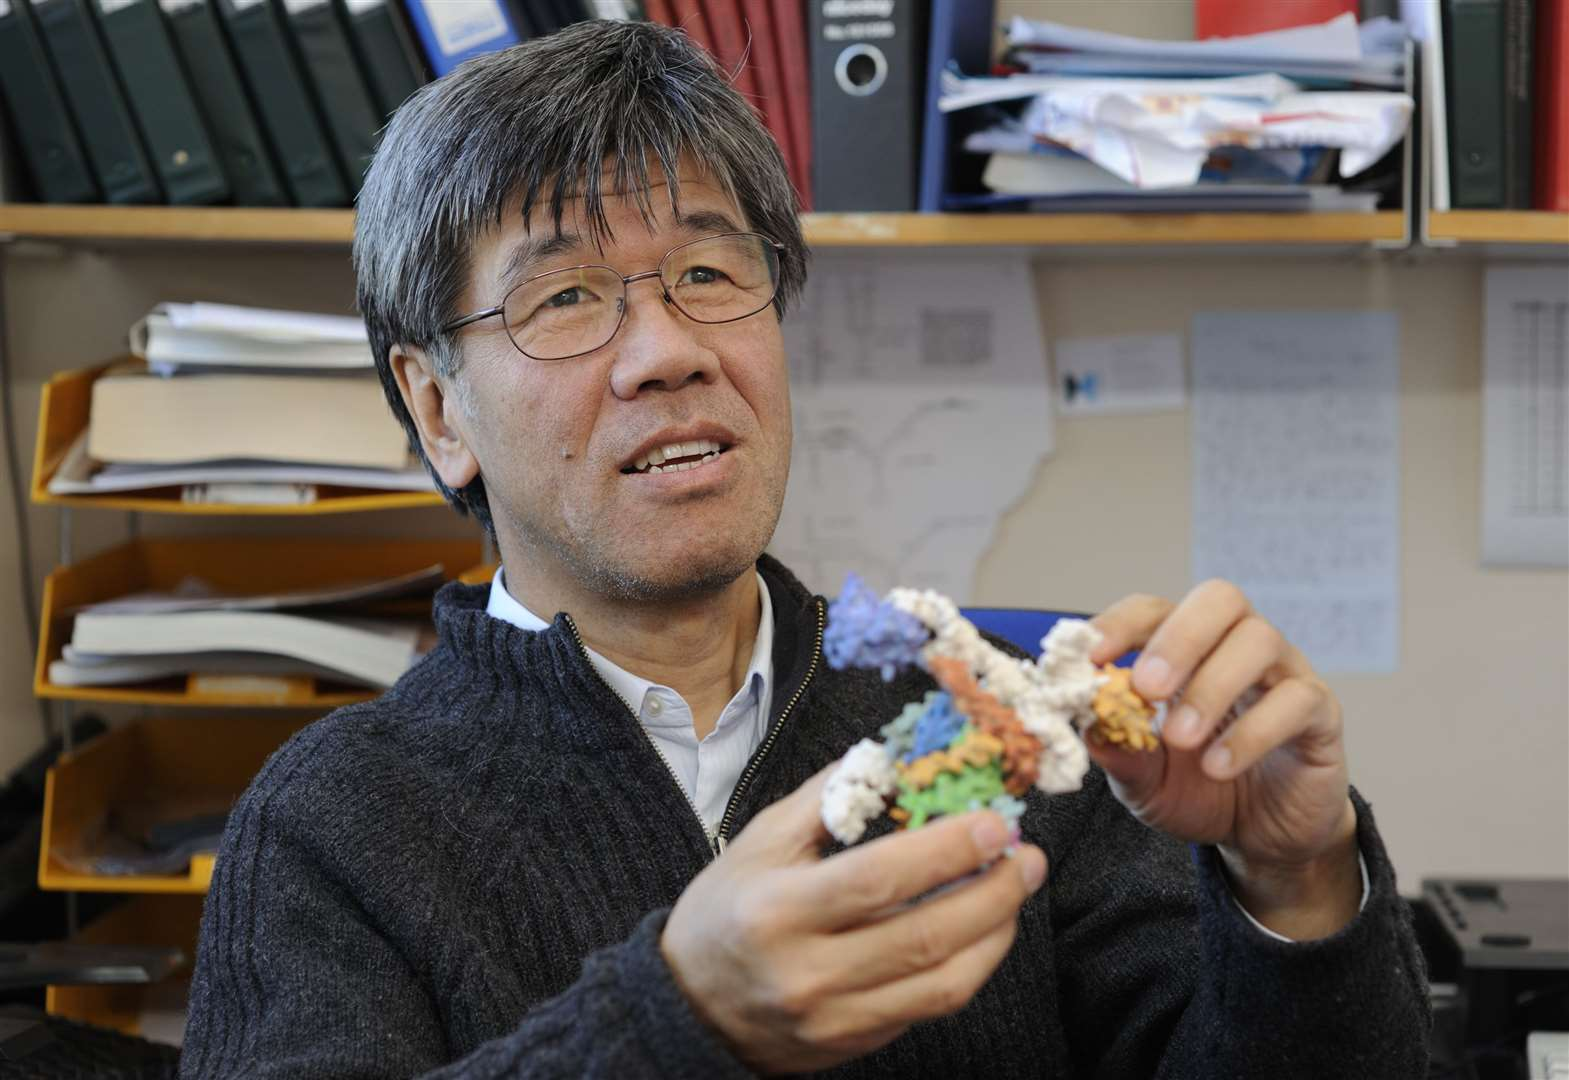 Tributes following the death of Kiyoshi Nagai, of the MRC Laboratory of Molecular Biology